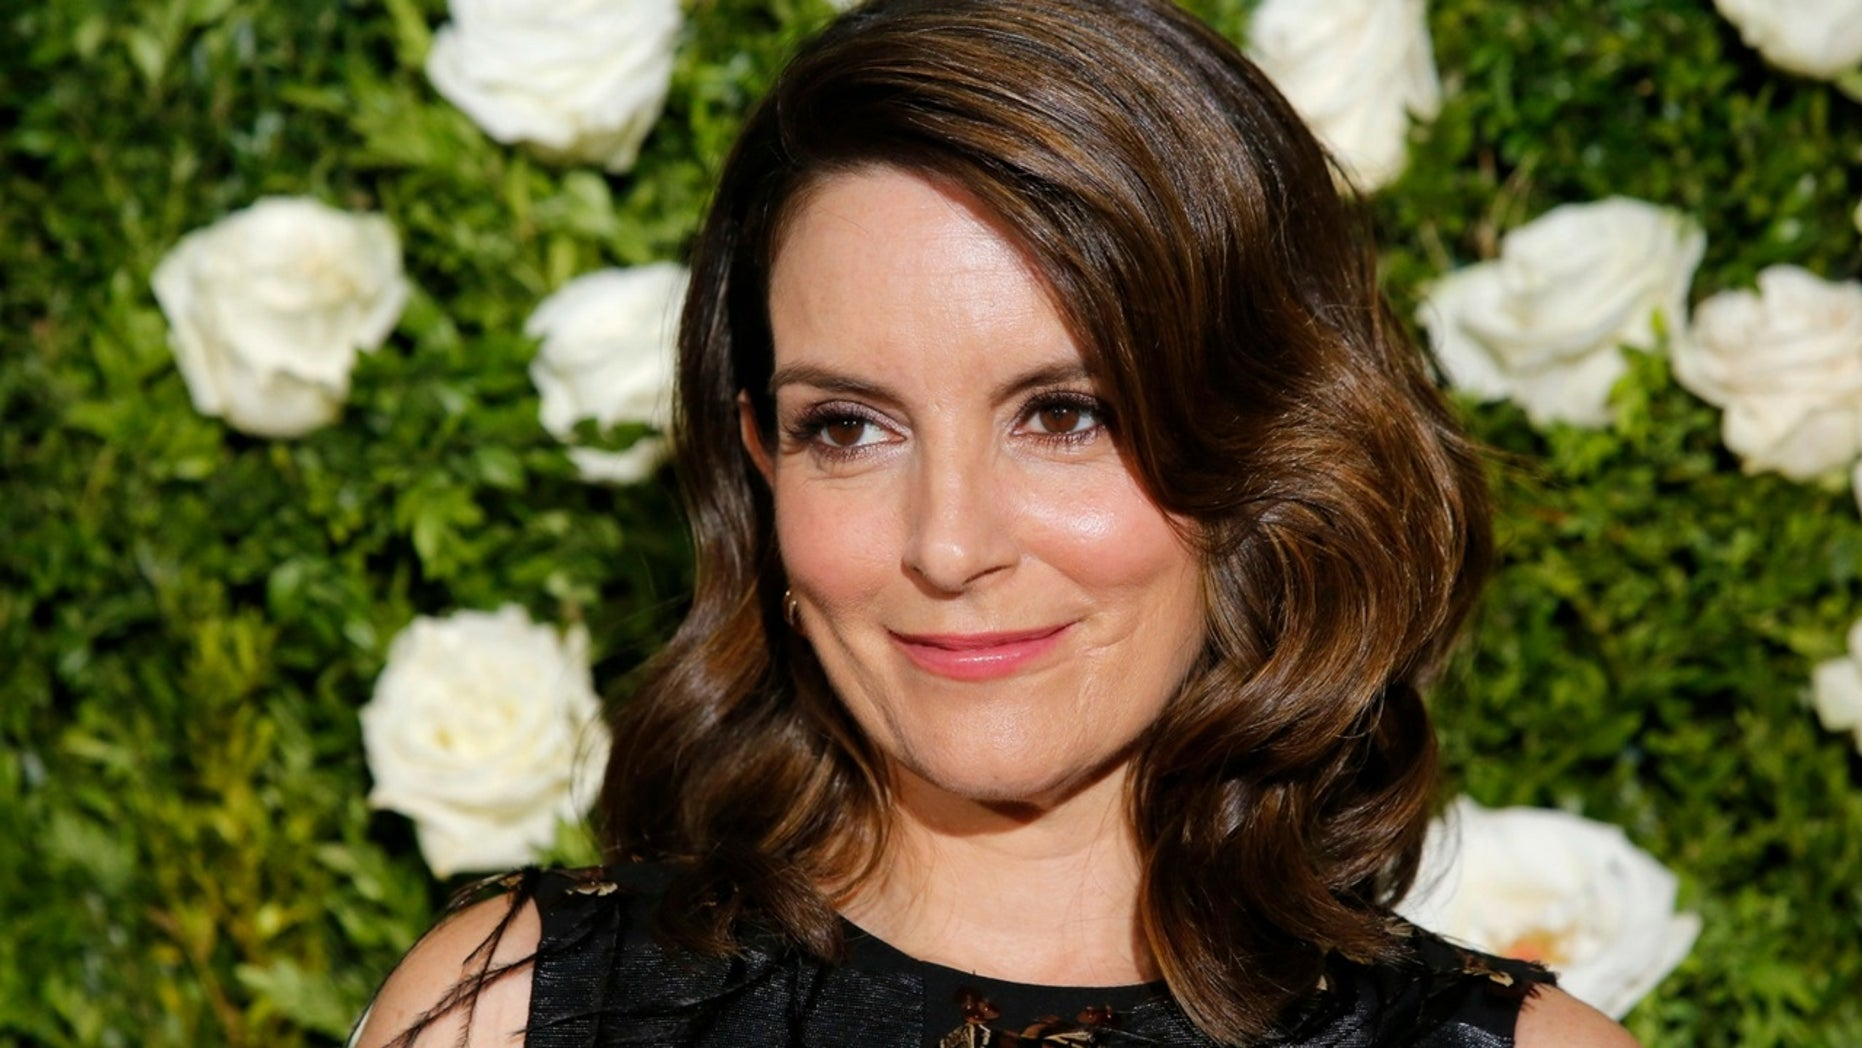 """Tina Fey said she """"screwed up' the controversial Charlottesville sketch and she's """"relieved"""" that she doesn't work at """"Saturday Night Live"""" at the moment. Tina Fey said she """"screwed up' the controversial Charlottesville sketch and she's """"relieved"""" that she doesn't work at """"Saturday Night Live"""" at the moment."""